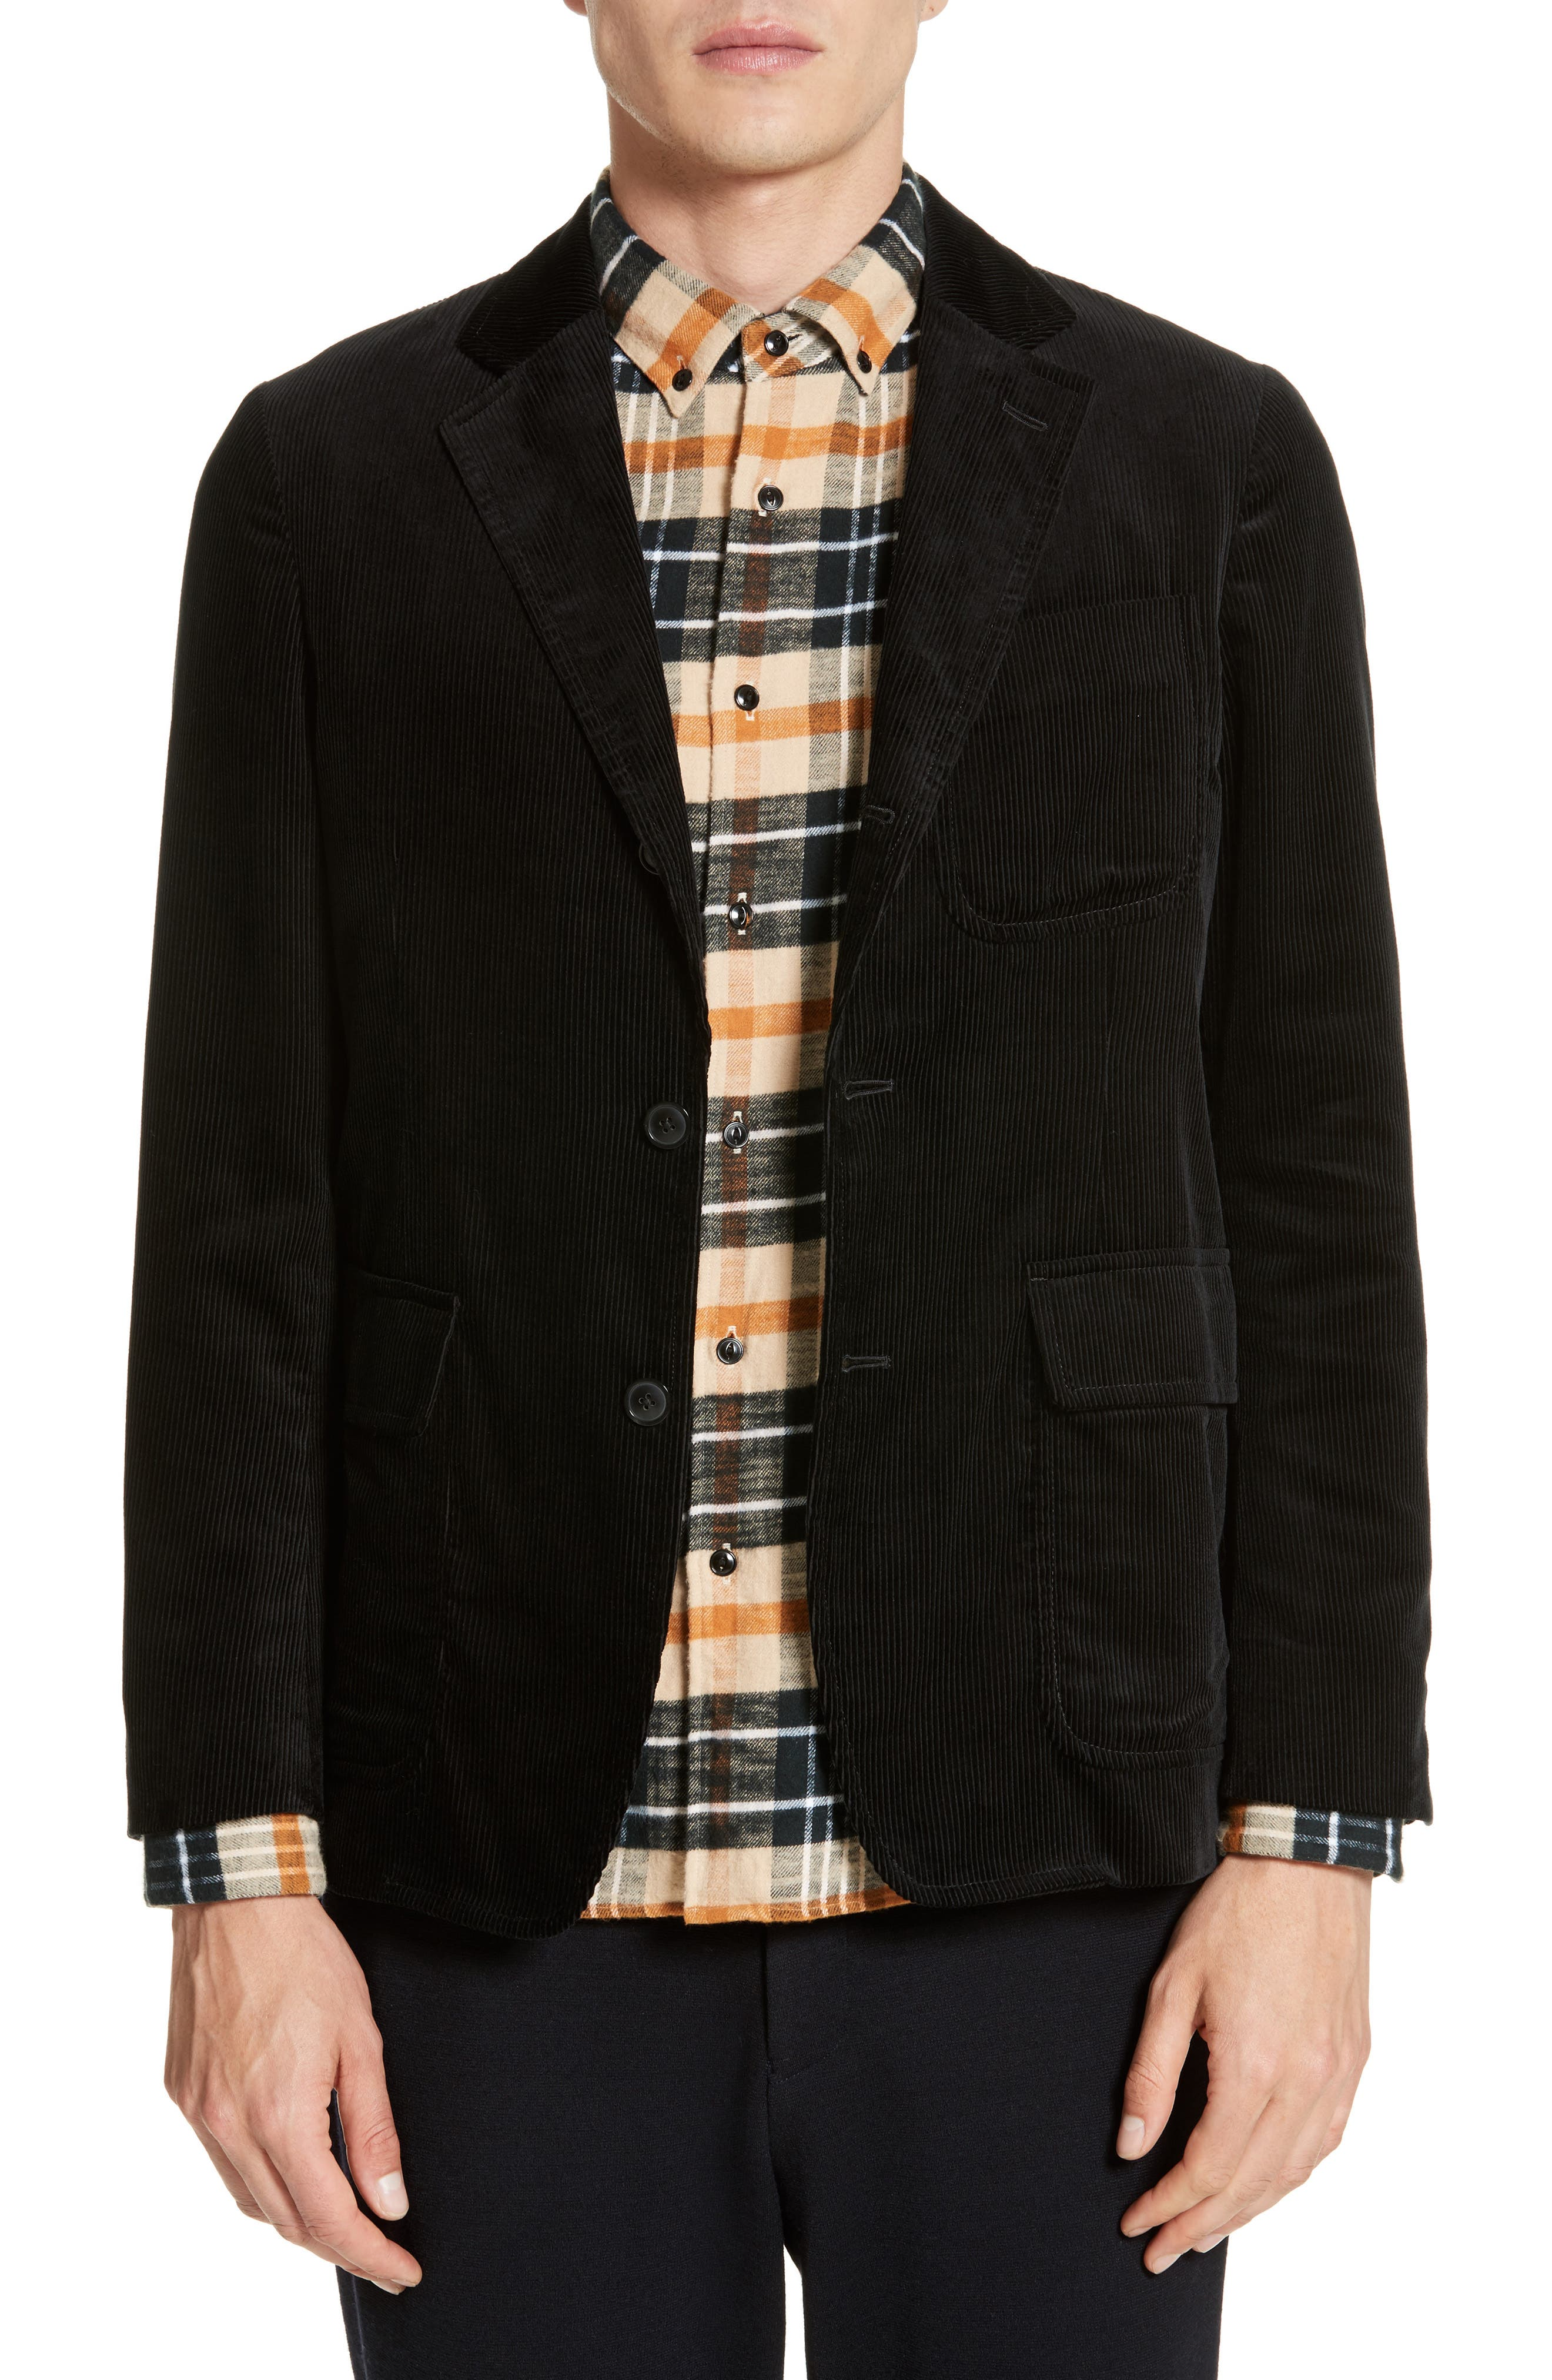 Sea Island Corduroy Jacket,                             Main thumbnail 1, color,                             Black